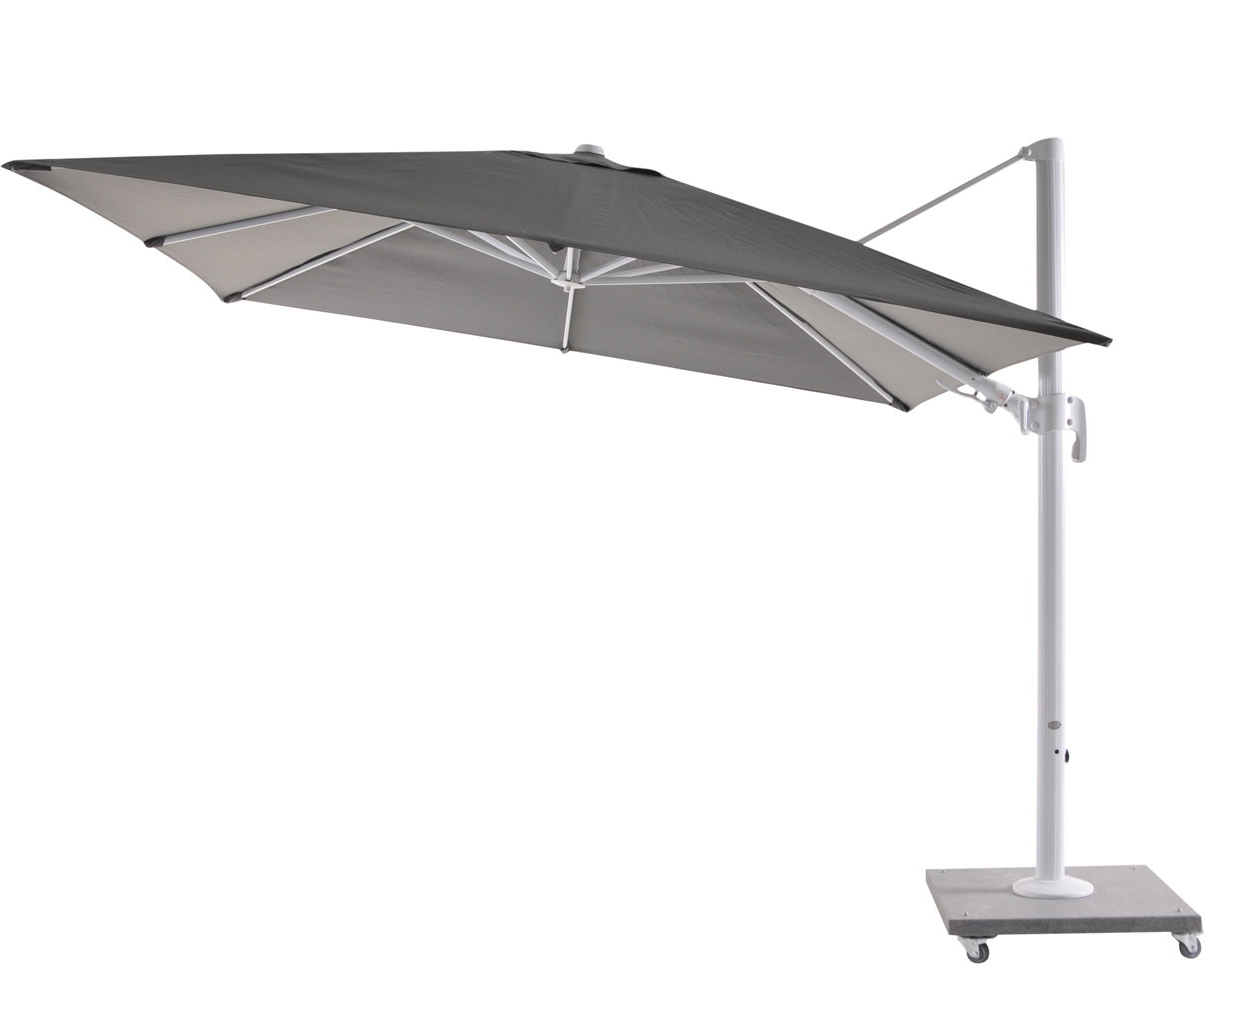 Iyanna Cantilever Umbrellas Regarding Current Bozarth 10' Square Cantilever Umbrella (Gallery 17 of 20)